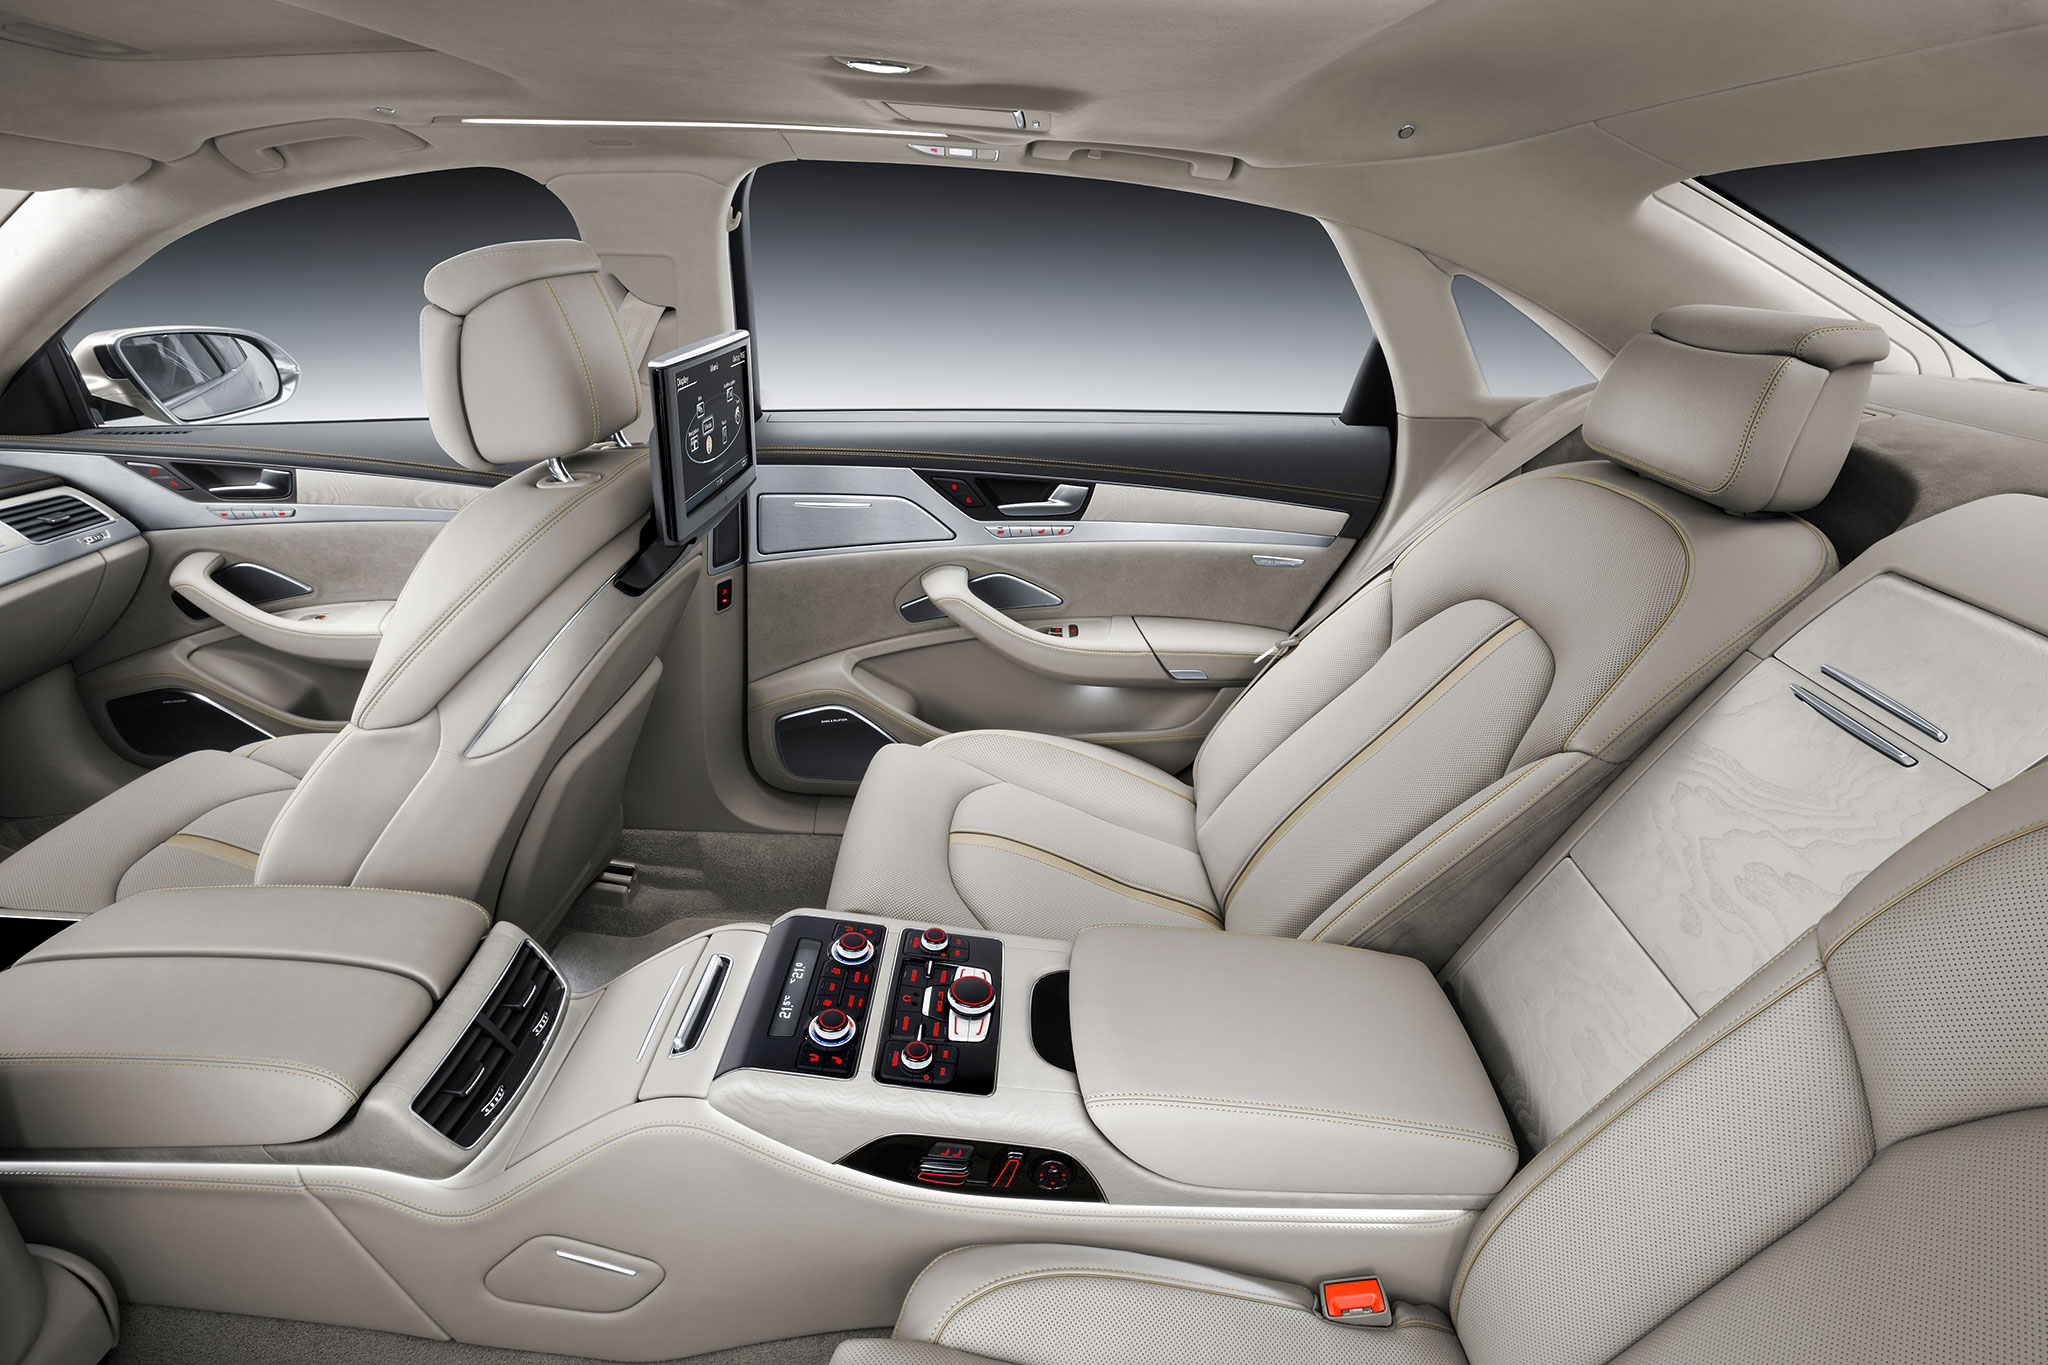 2015 audi a8 to start at $78,295 - automobile